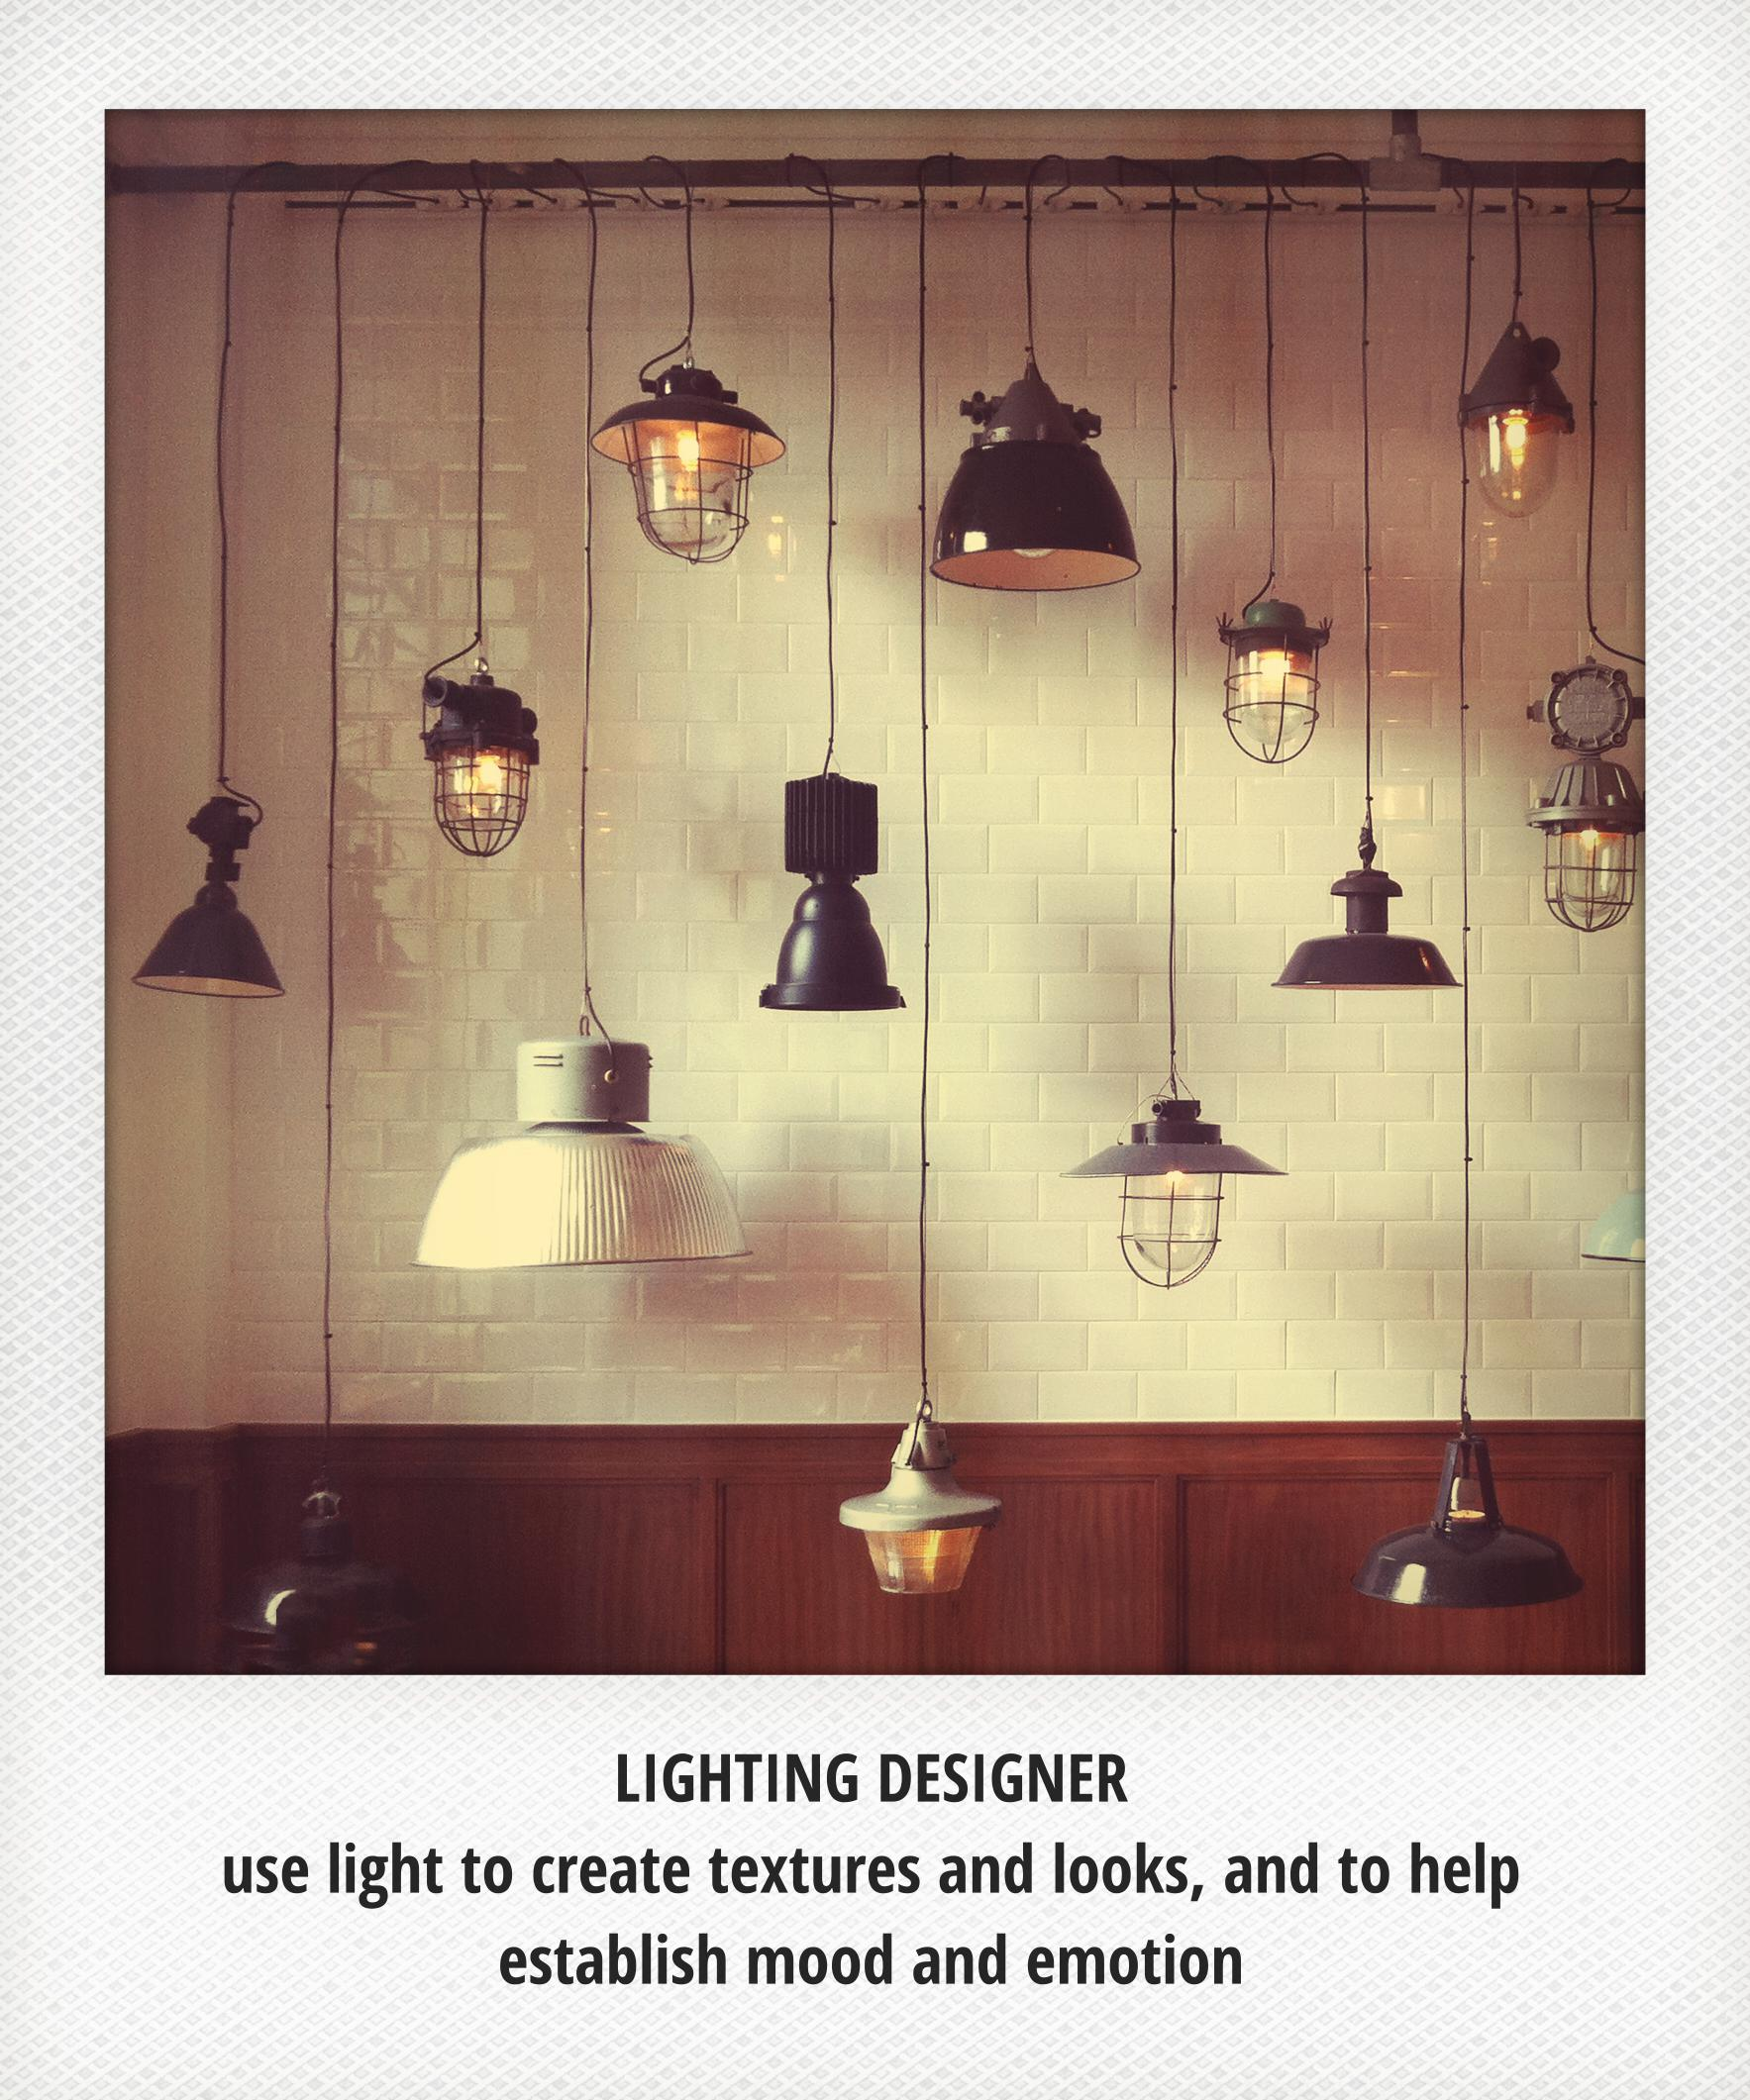 design | lighting.jpg